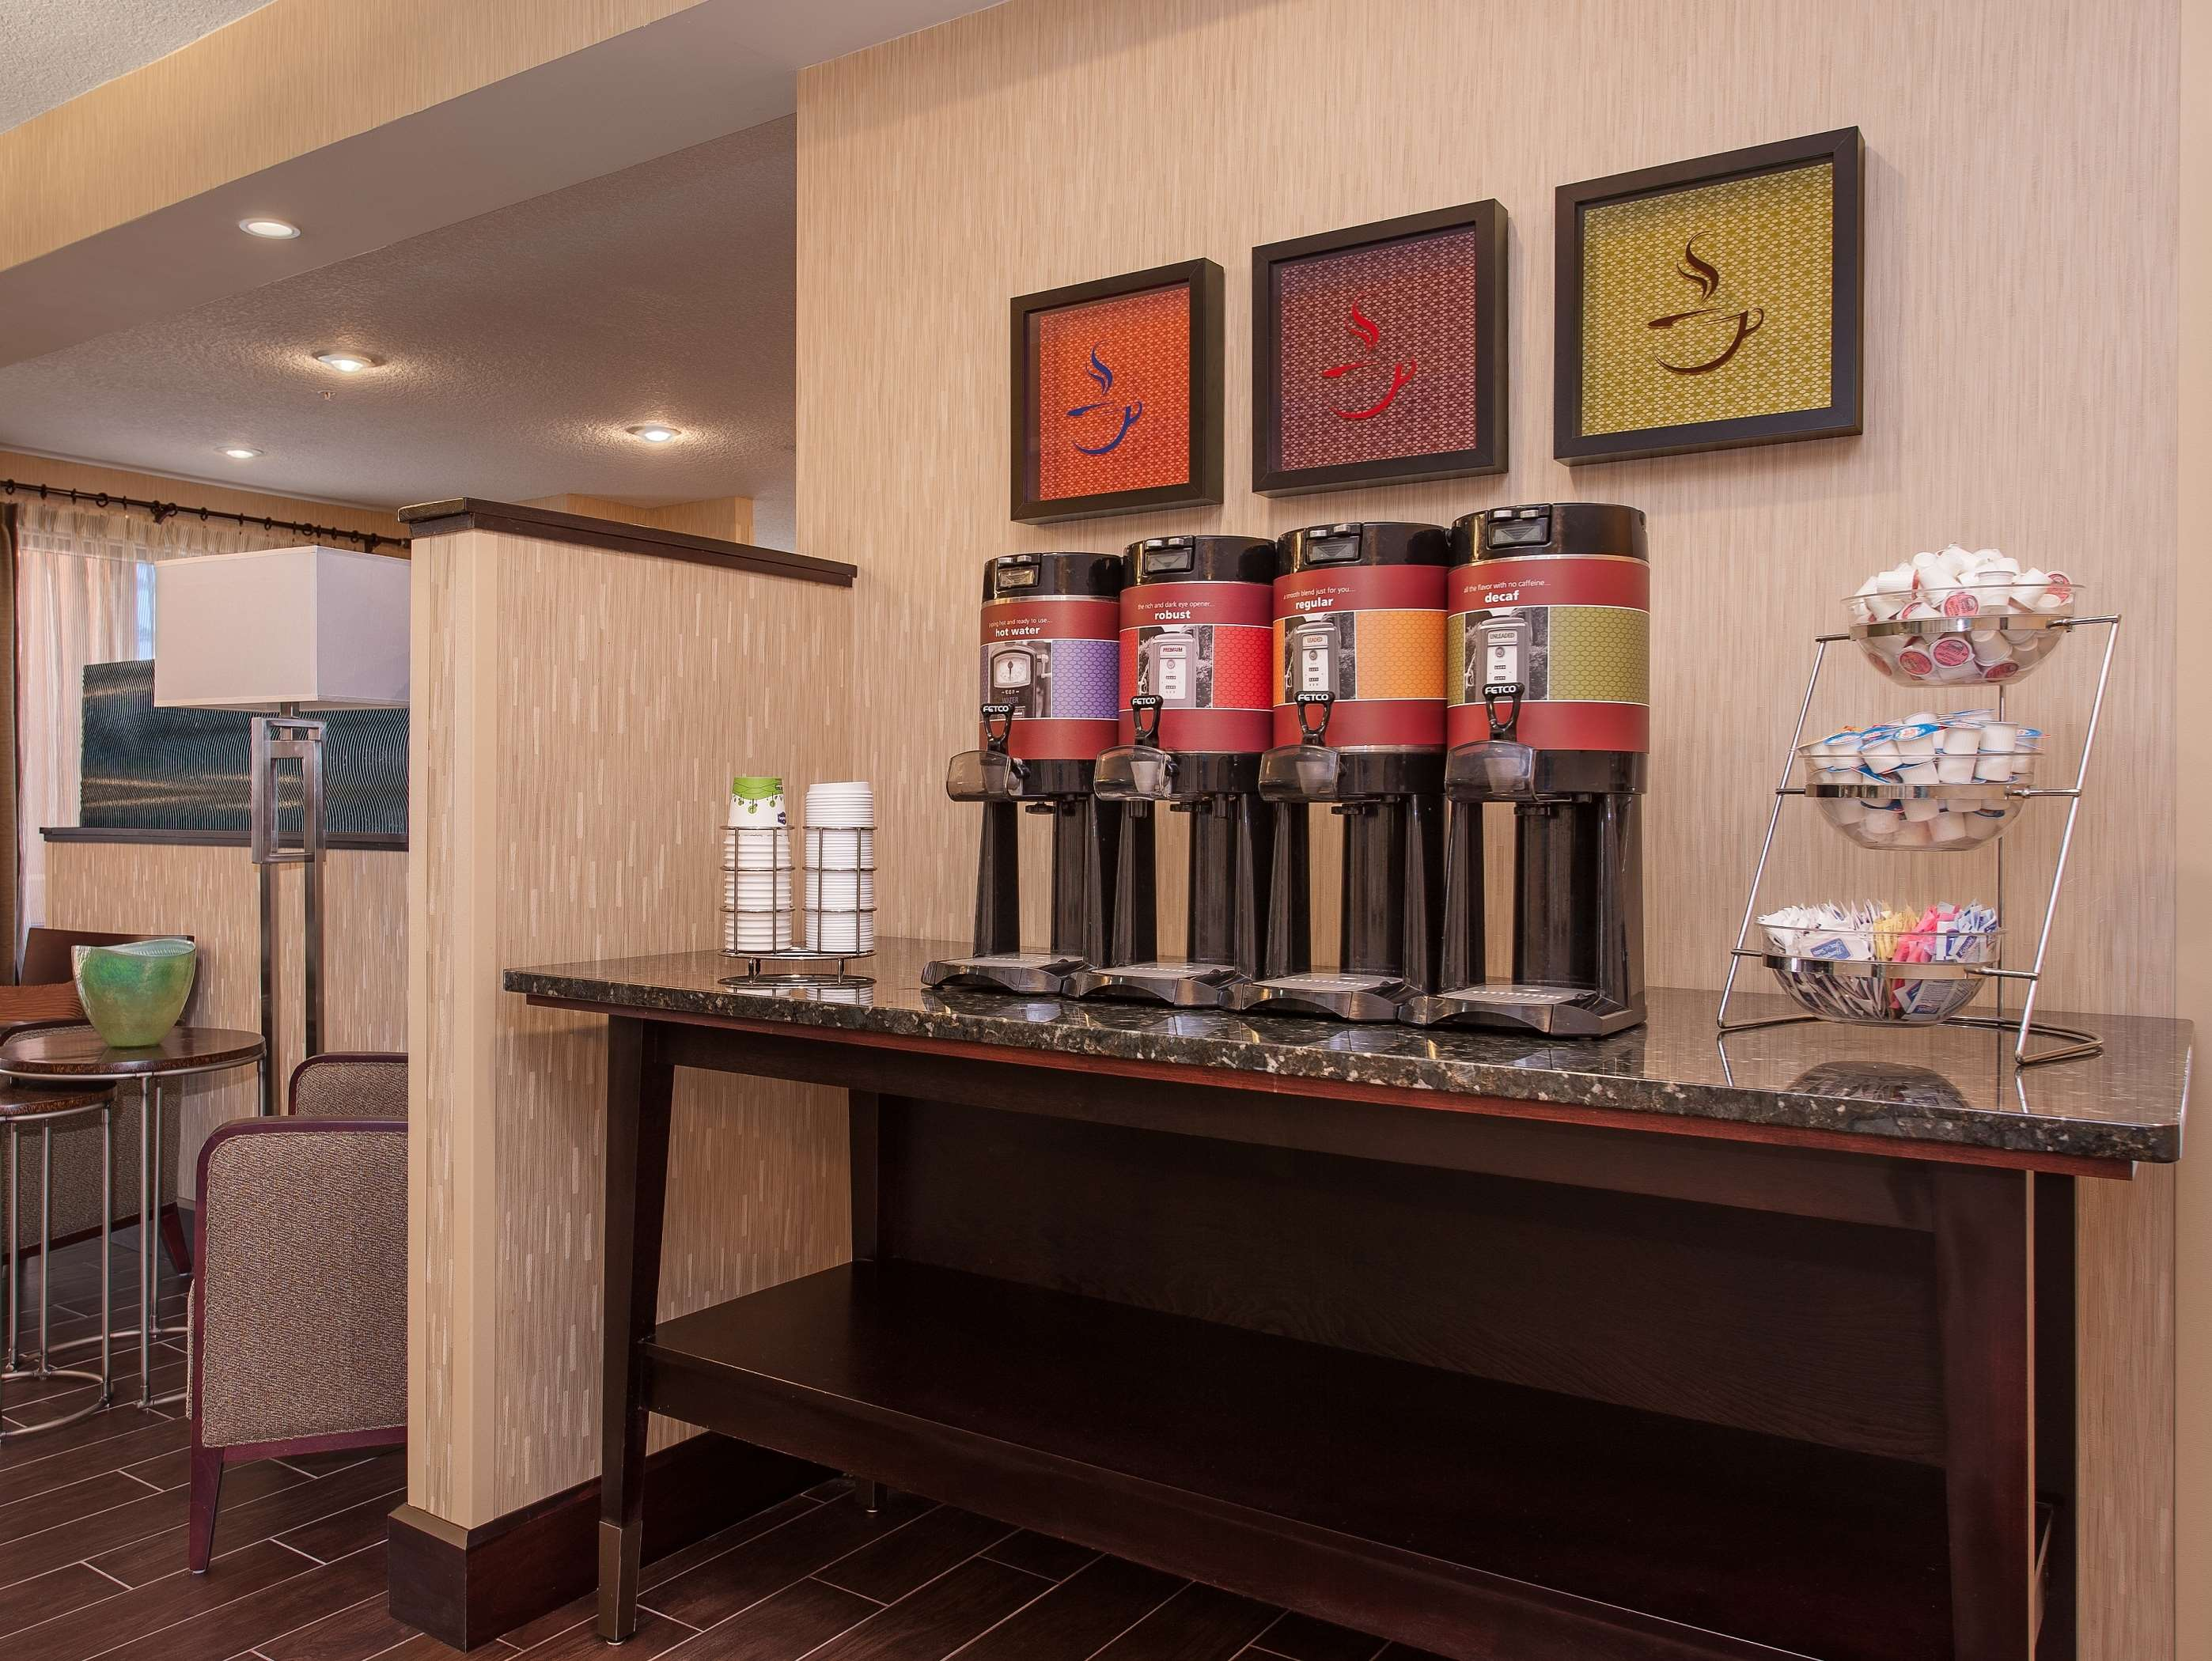 Hampton Inn Niceville-Eglin Air Force Base image 8